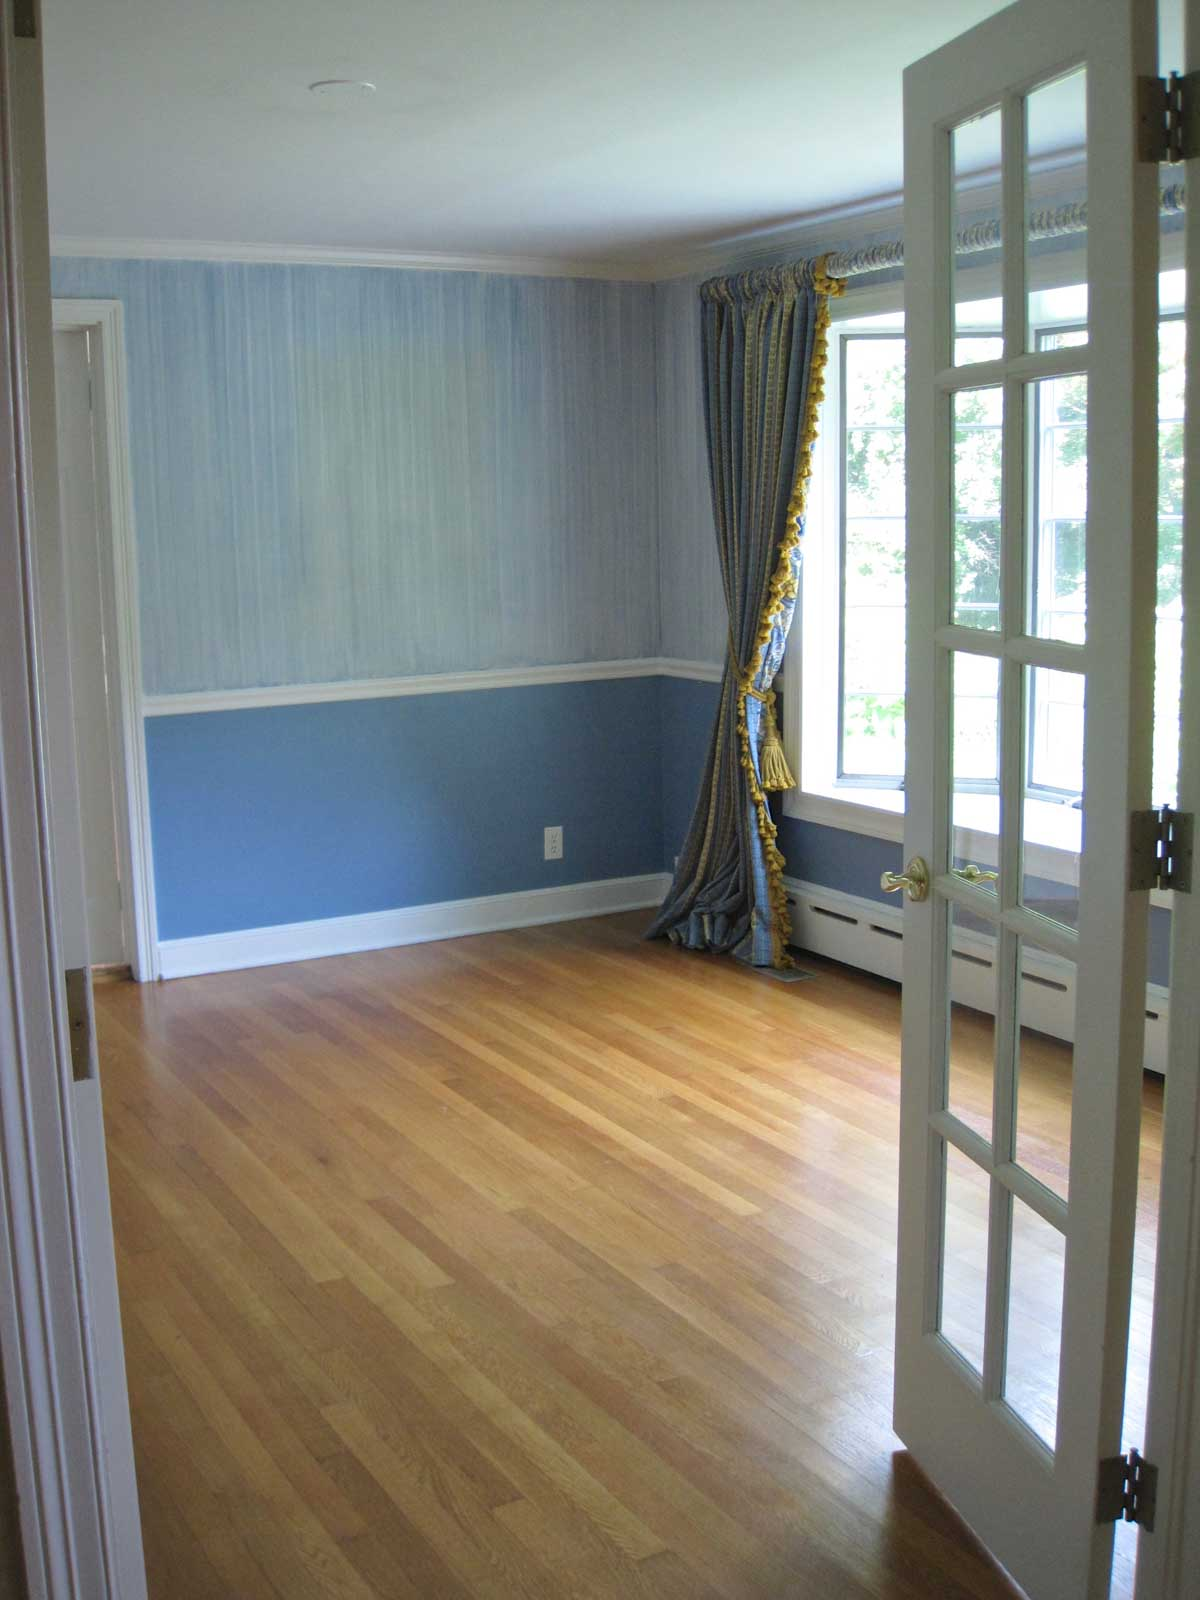 Home remodel: Our dining room before remodeling!